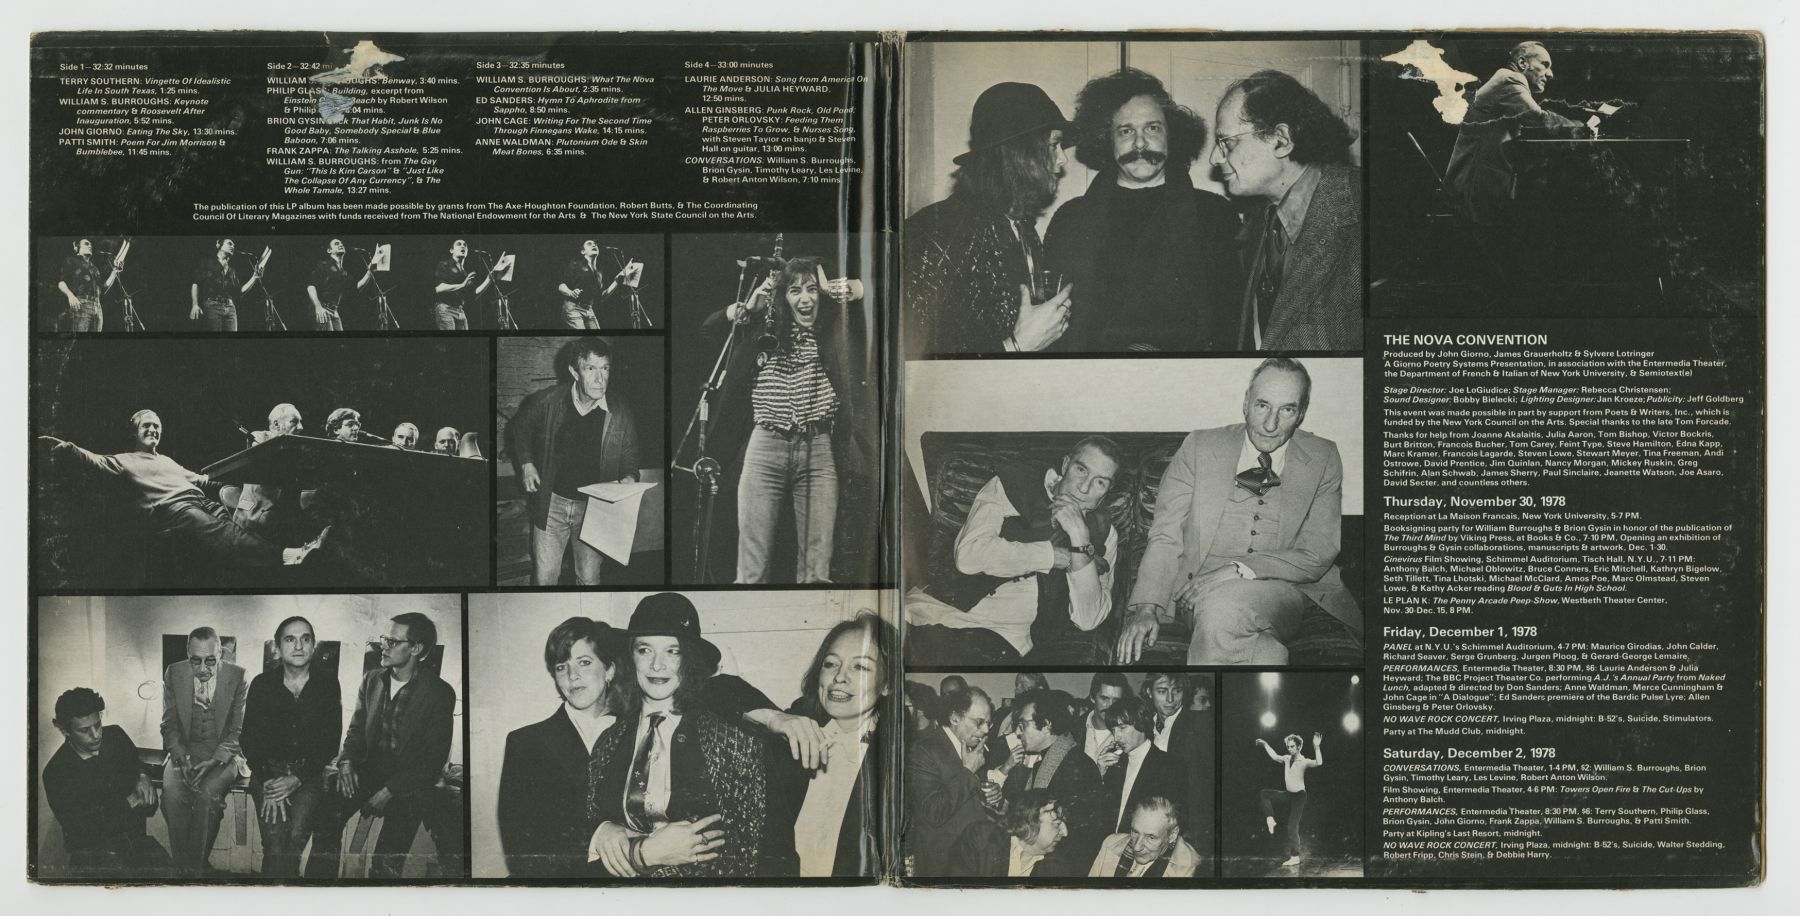 The Nova Convention (1979), inside spread